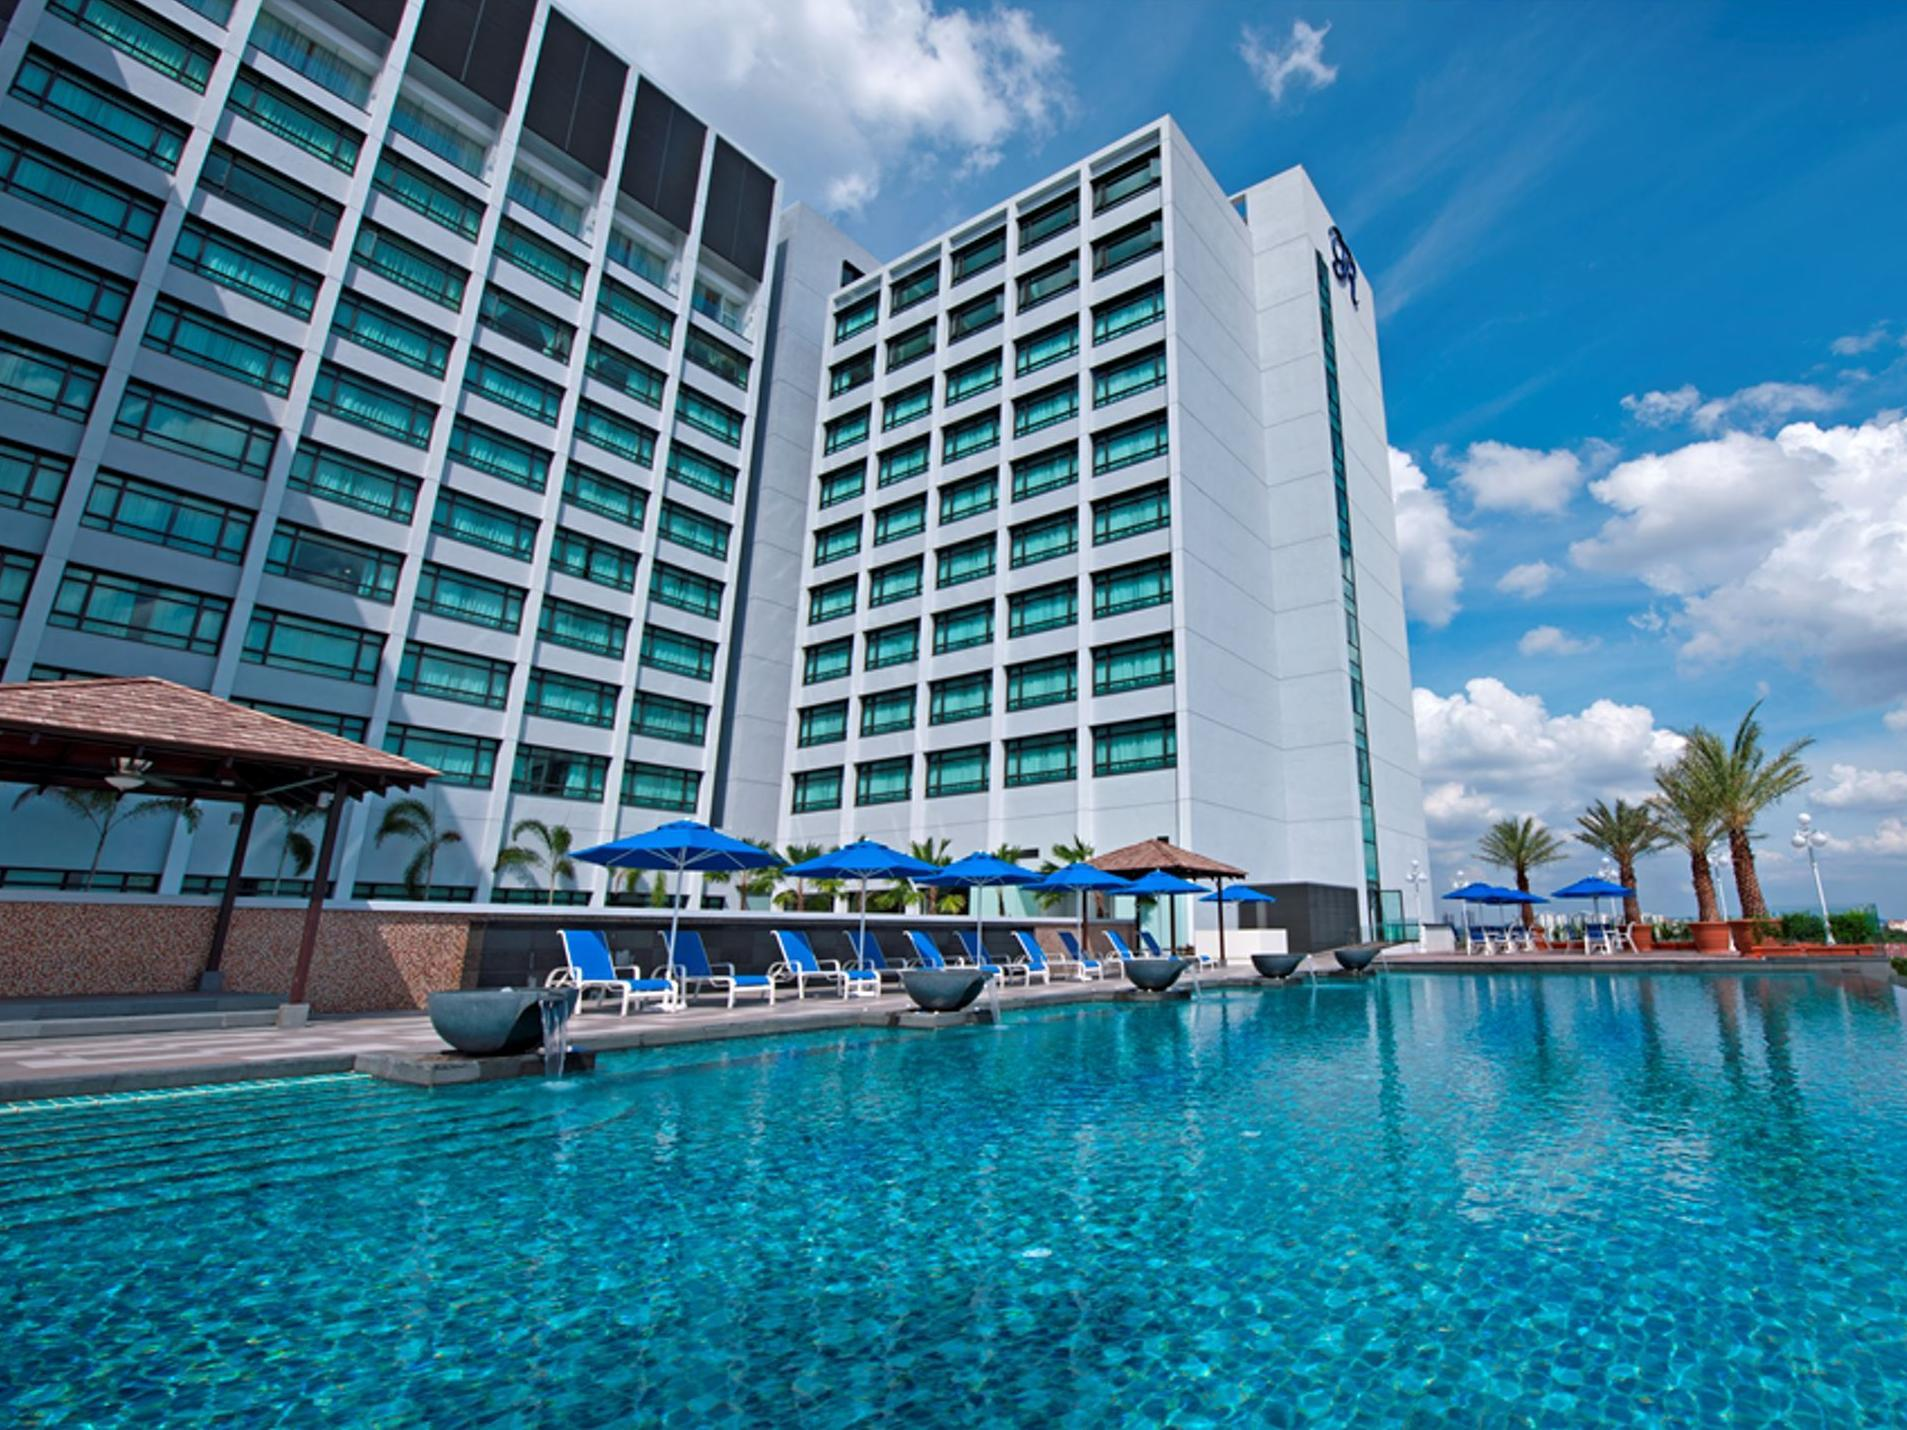 The Royale Chulan Damansara Hotel